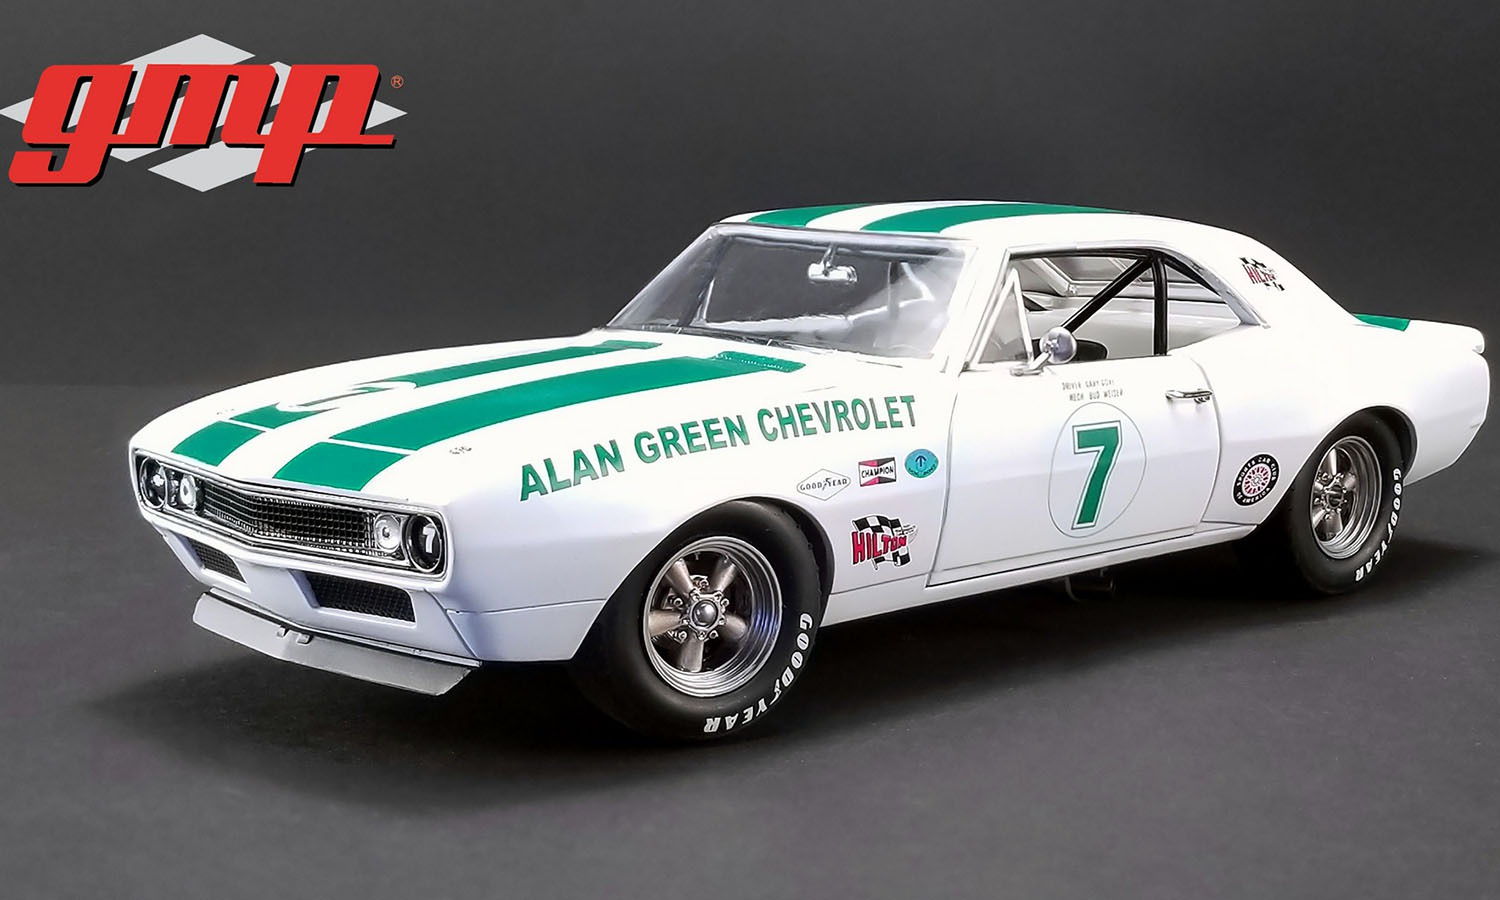 GMP 1/18 ミニカー ダイキャストモデル 1967年モデル シボレー カマロ Trans AM No.7 Allan Green Chevrolet#7 1967 CHEVROLET TRANS AM CAMARO - ALLAN GREEN CHEVROLET 1:18 GMP